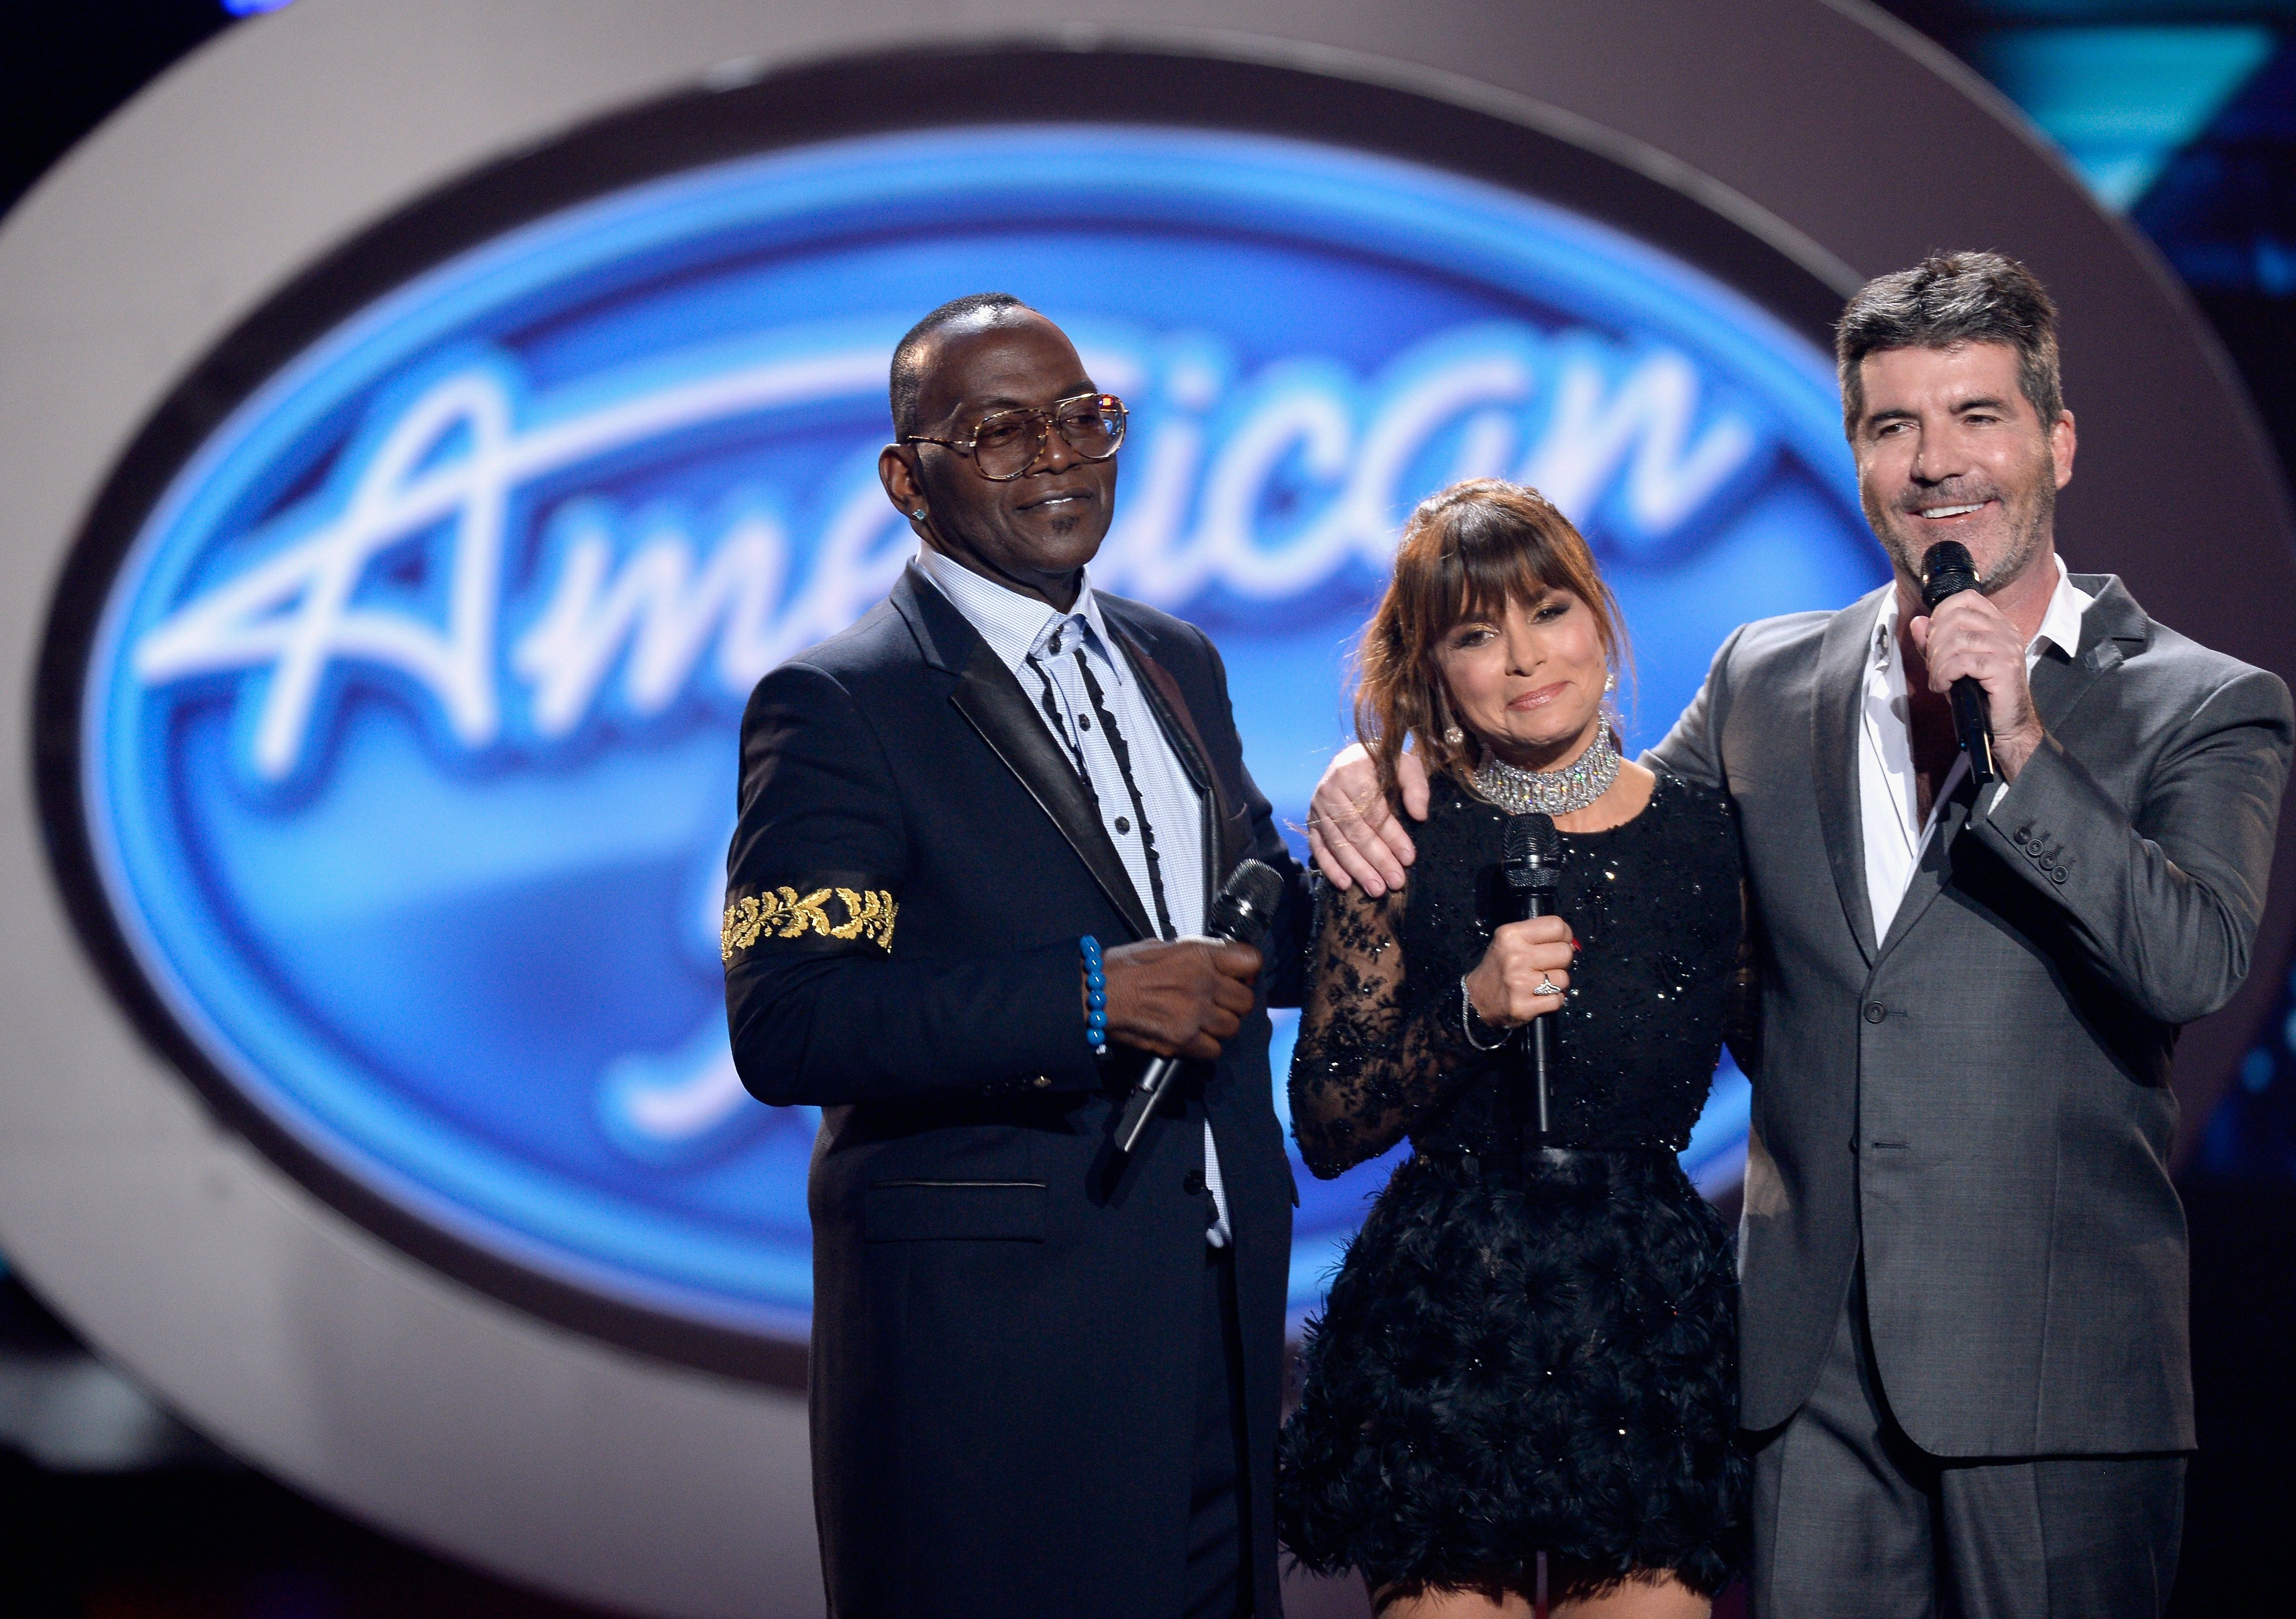 """Randy Jackson, Paula Abdul and Simon Cowell during FOX's """"American Idol"""" Finale on April 7, 2016. 